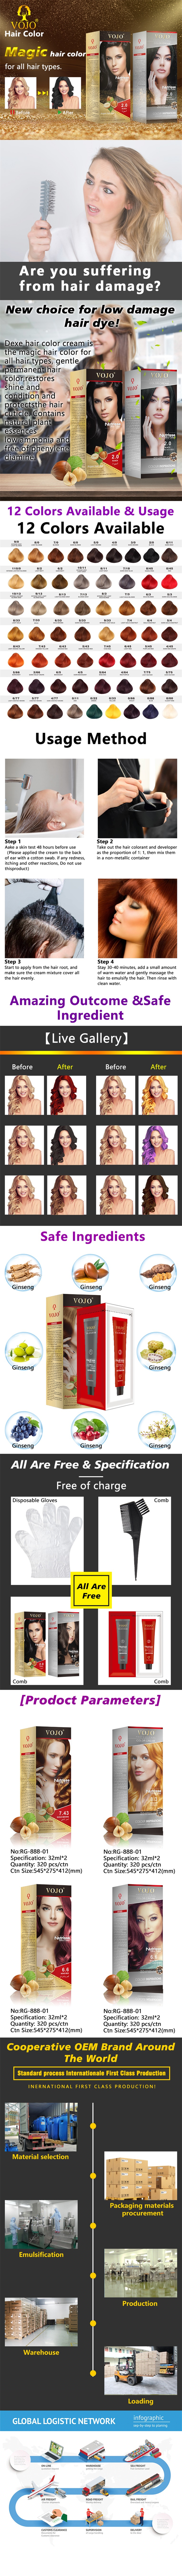 Guangzhou VOJO Factory wholesale price YOSATEN keratin salon professional permanent hair dye color cream and developer